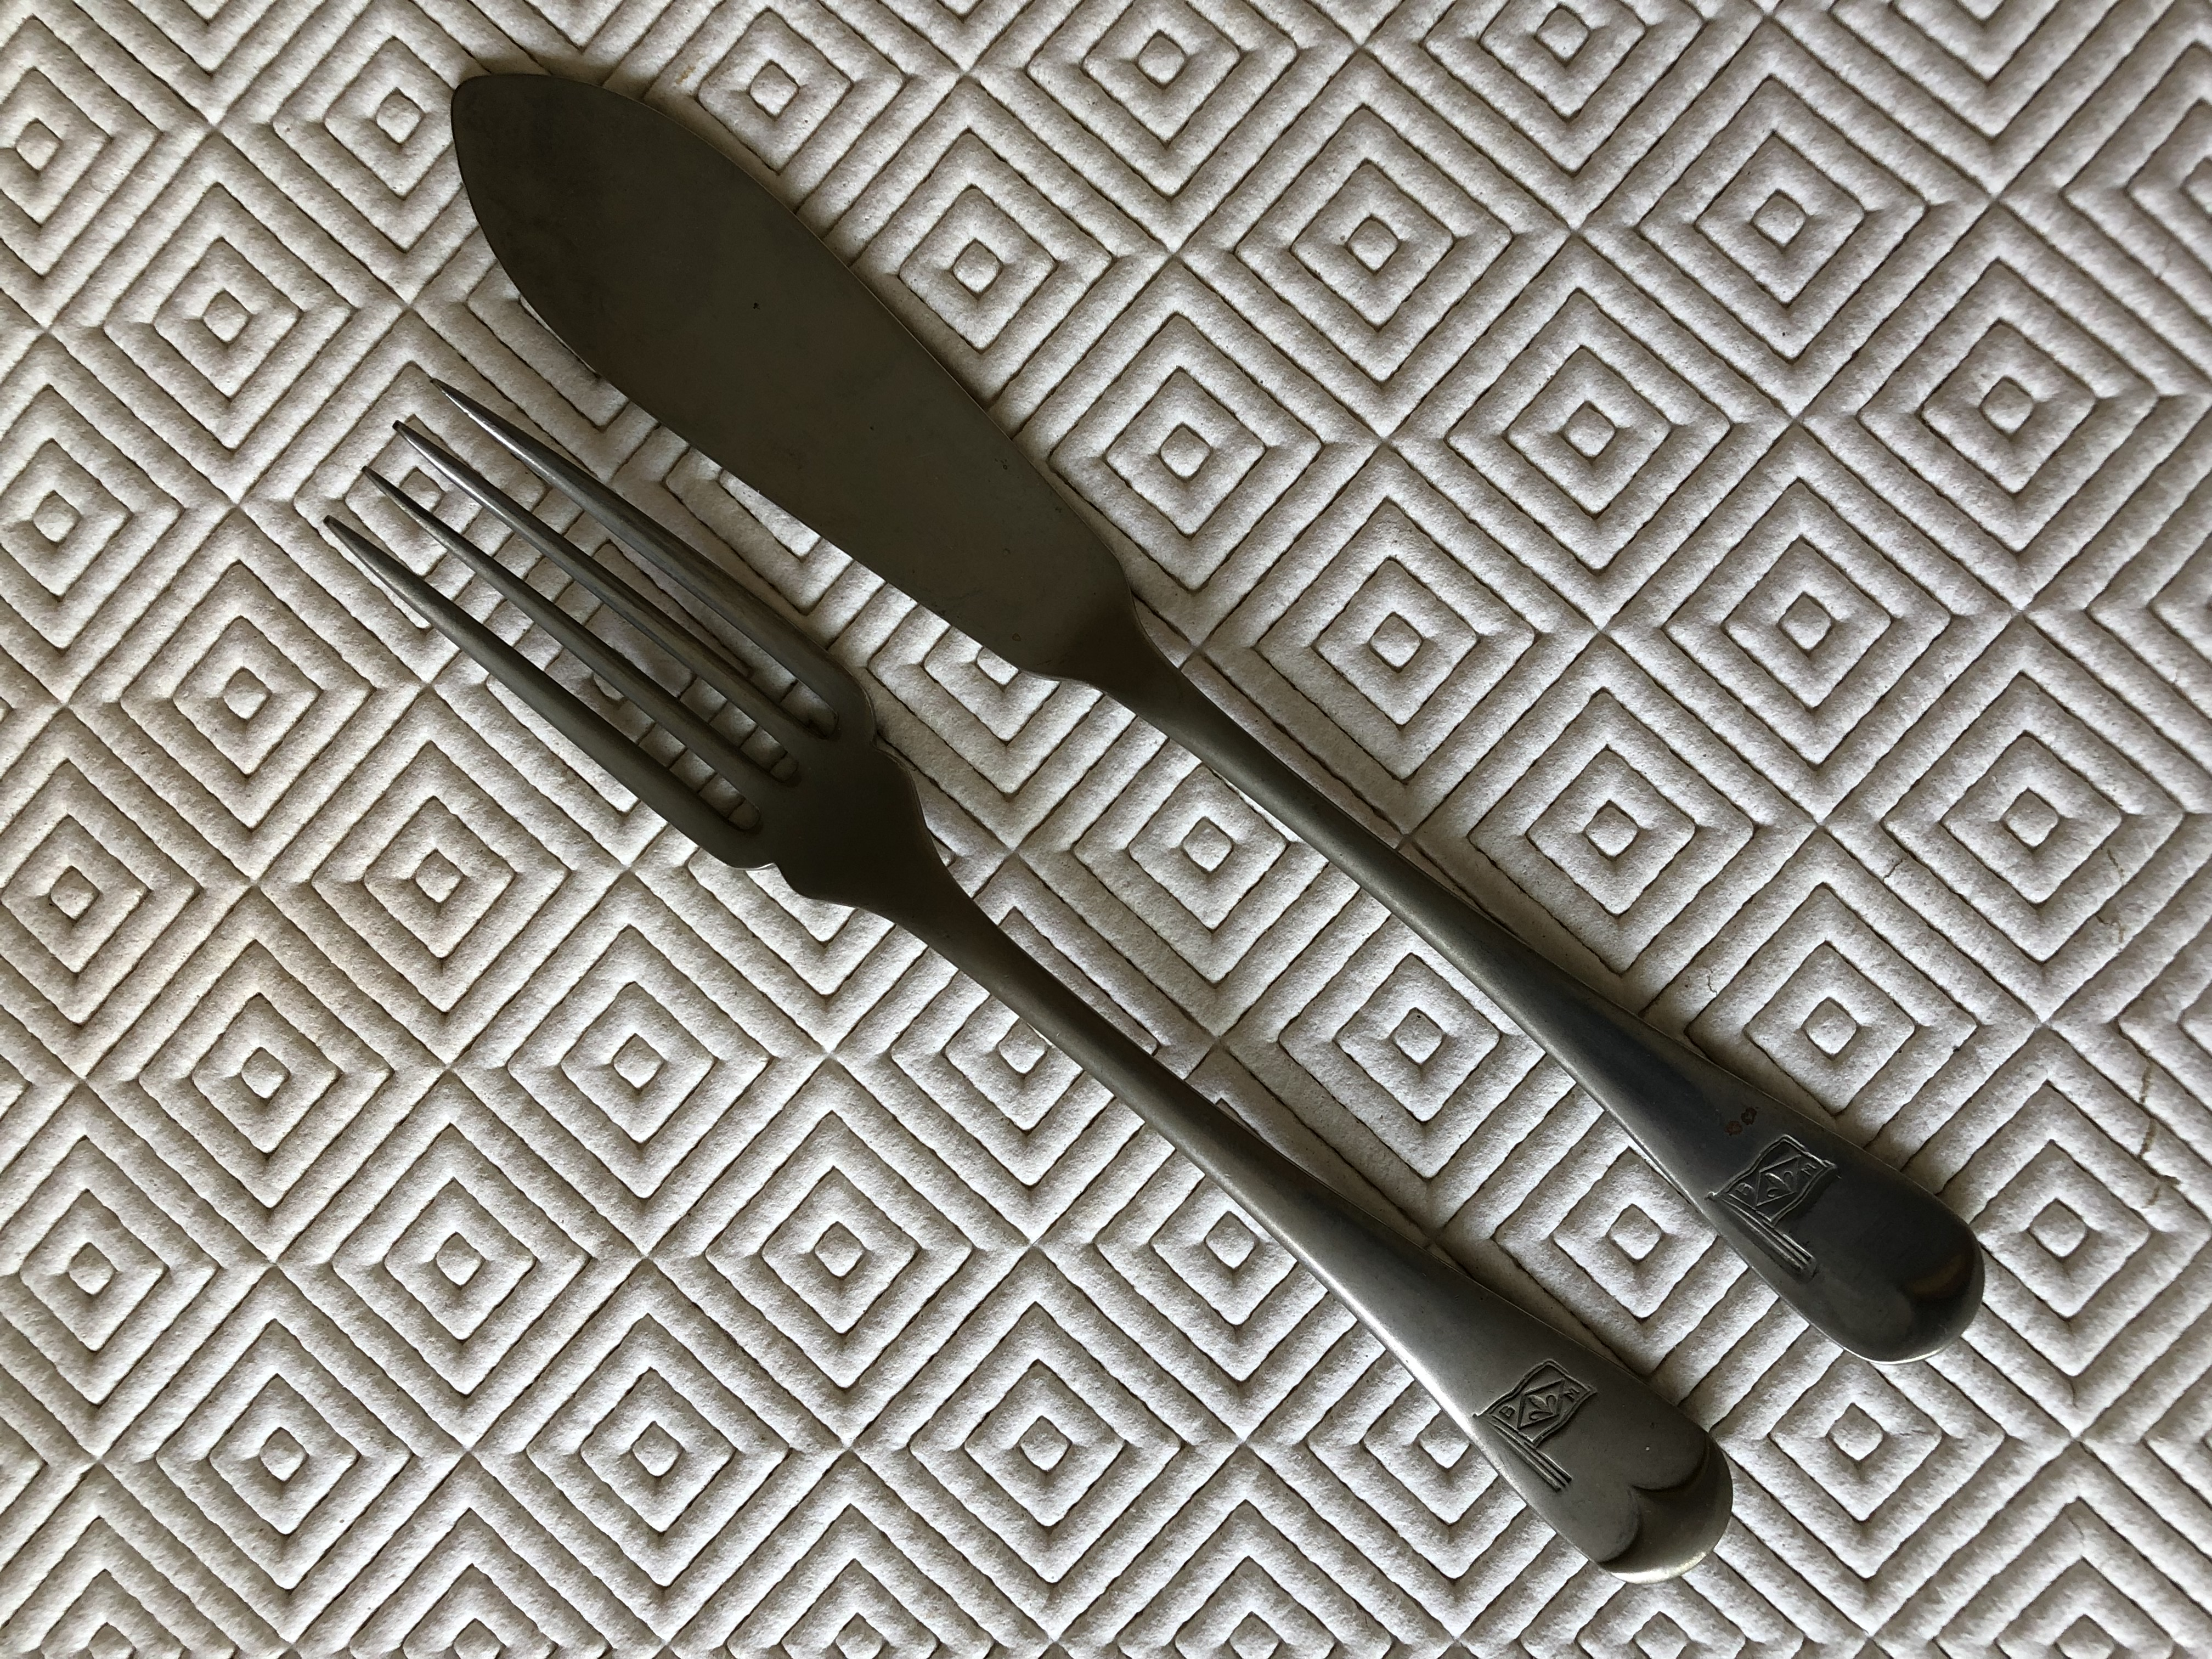 AS USED IN SERVICE SHIPS DINING KNIFE AND FORK FROM THE BURIES MARKS LINE